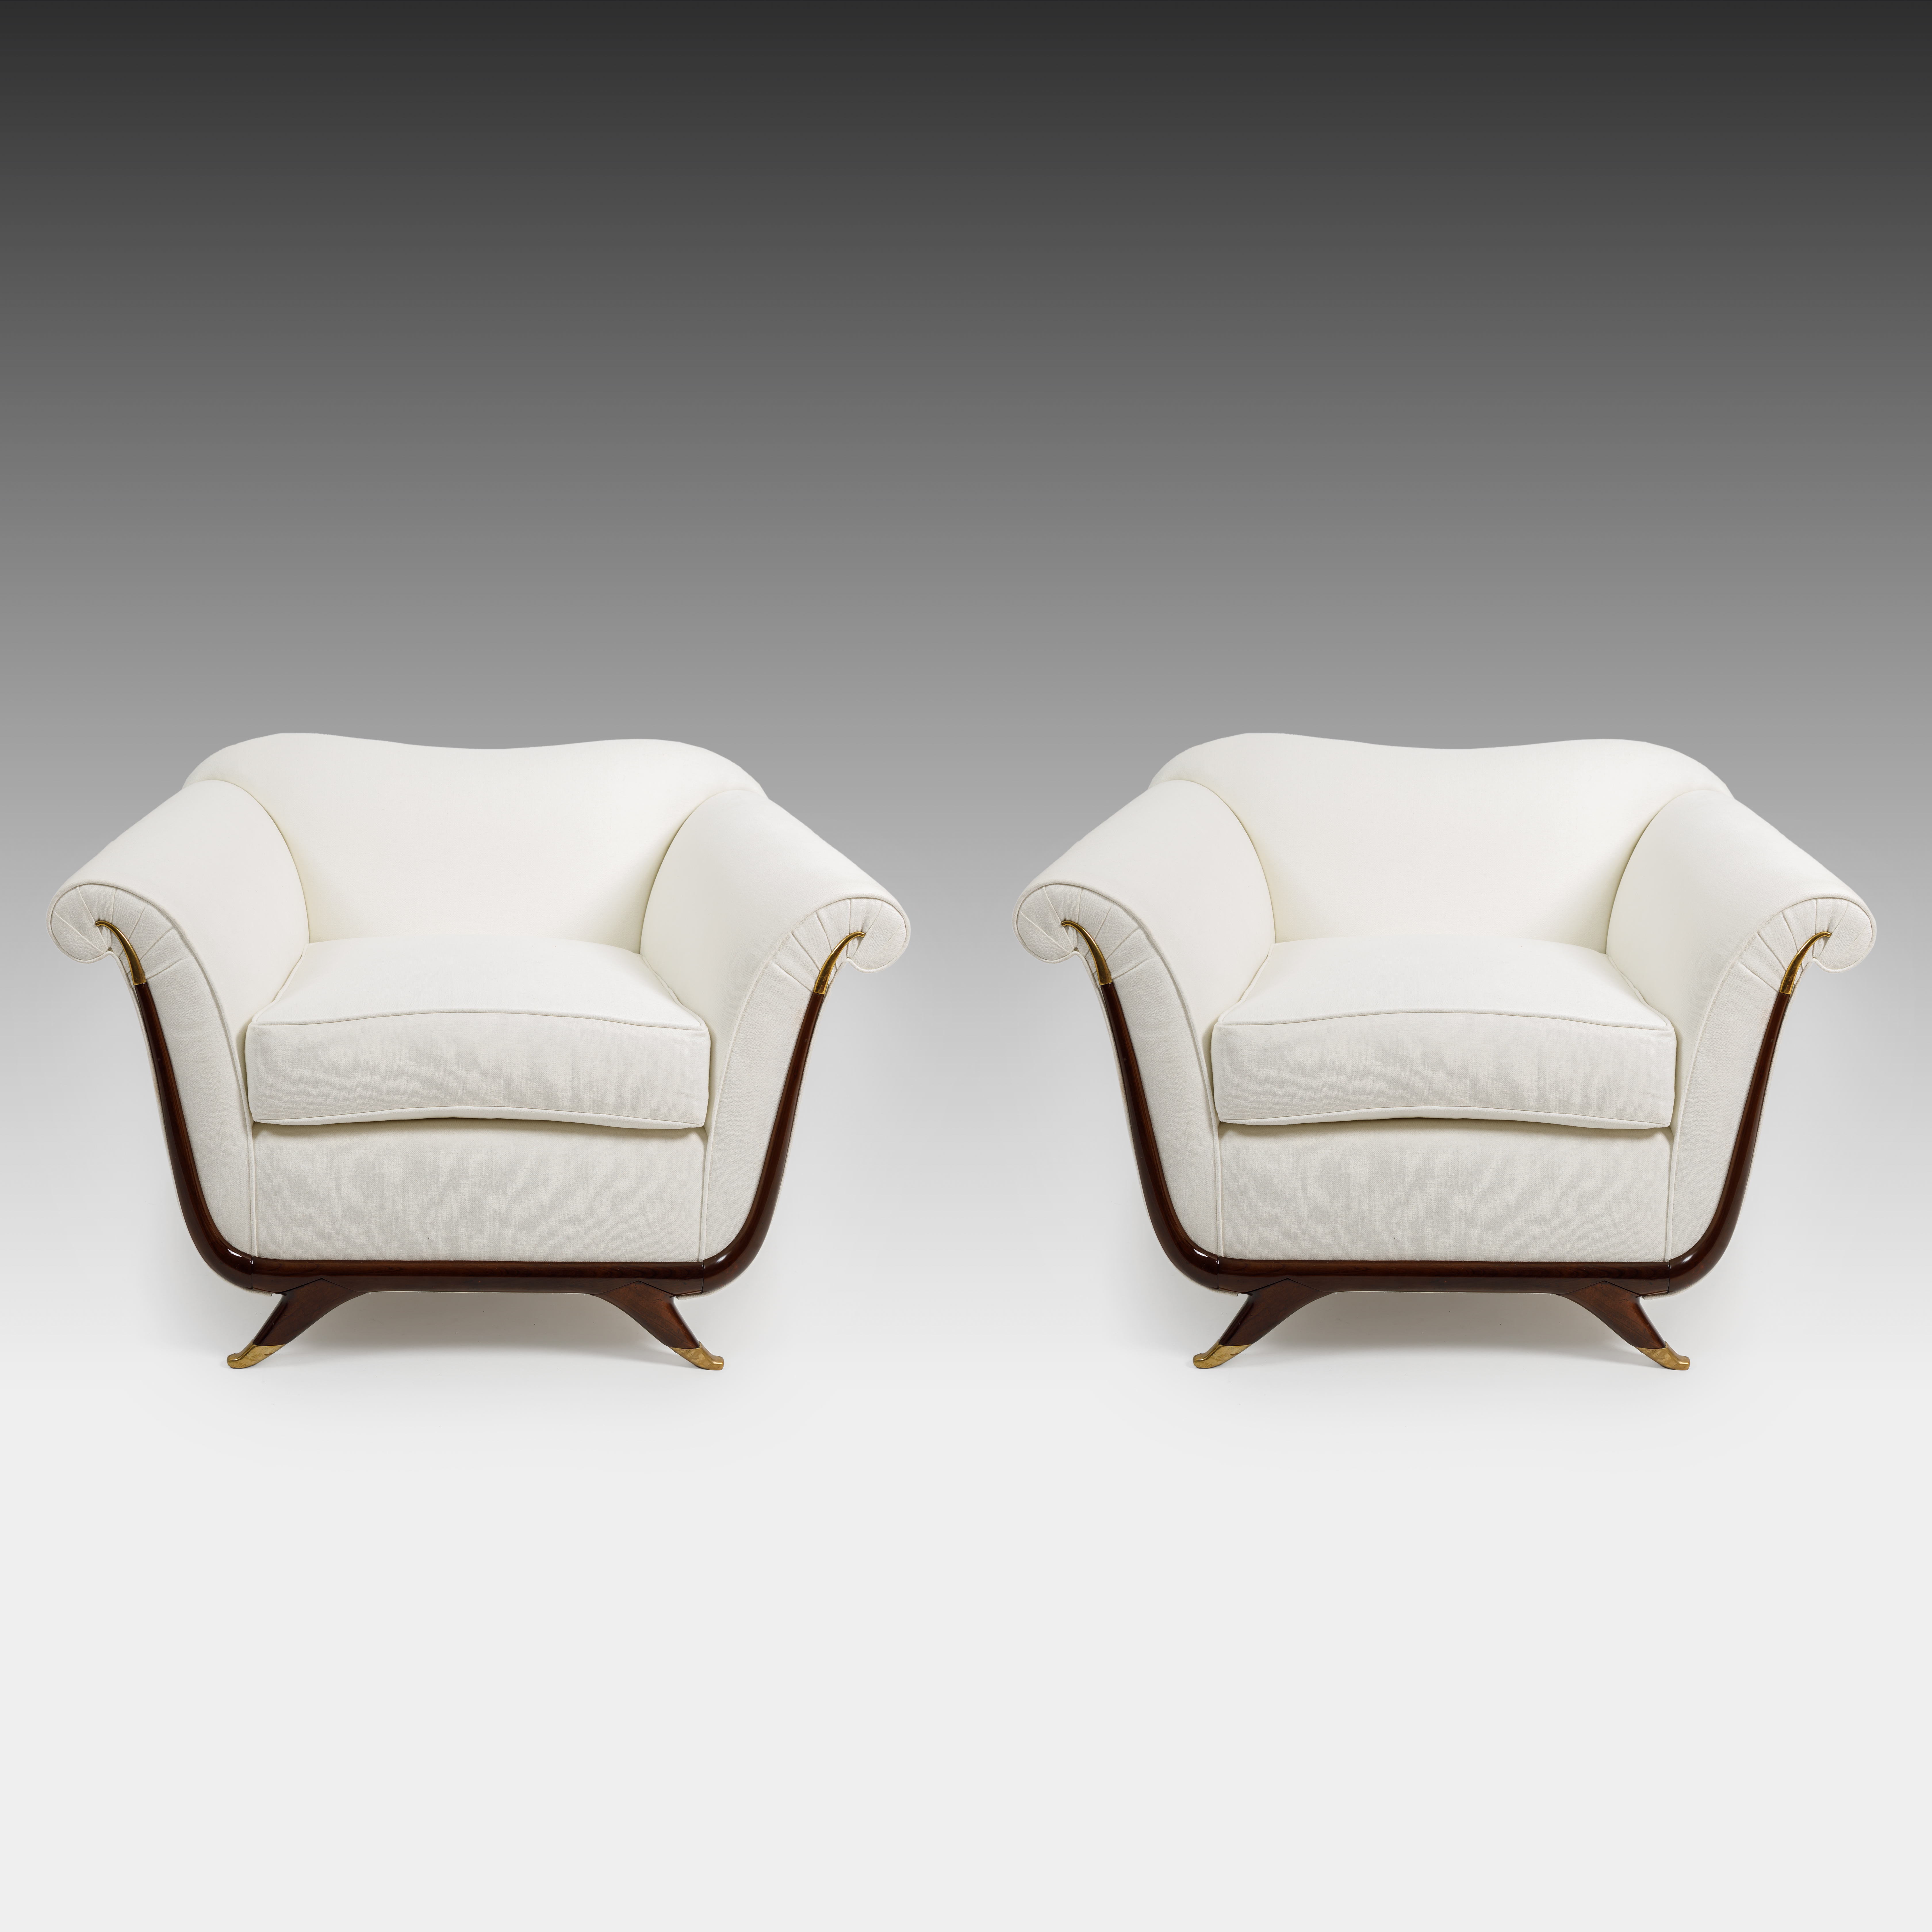 Pair of Armchairs by Guglielmo Ulrich, attributed to   soyun k.